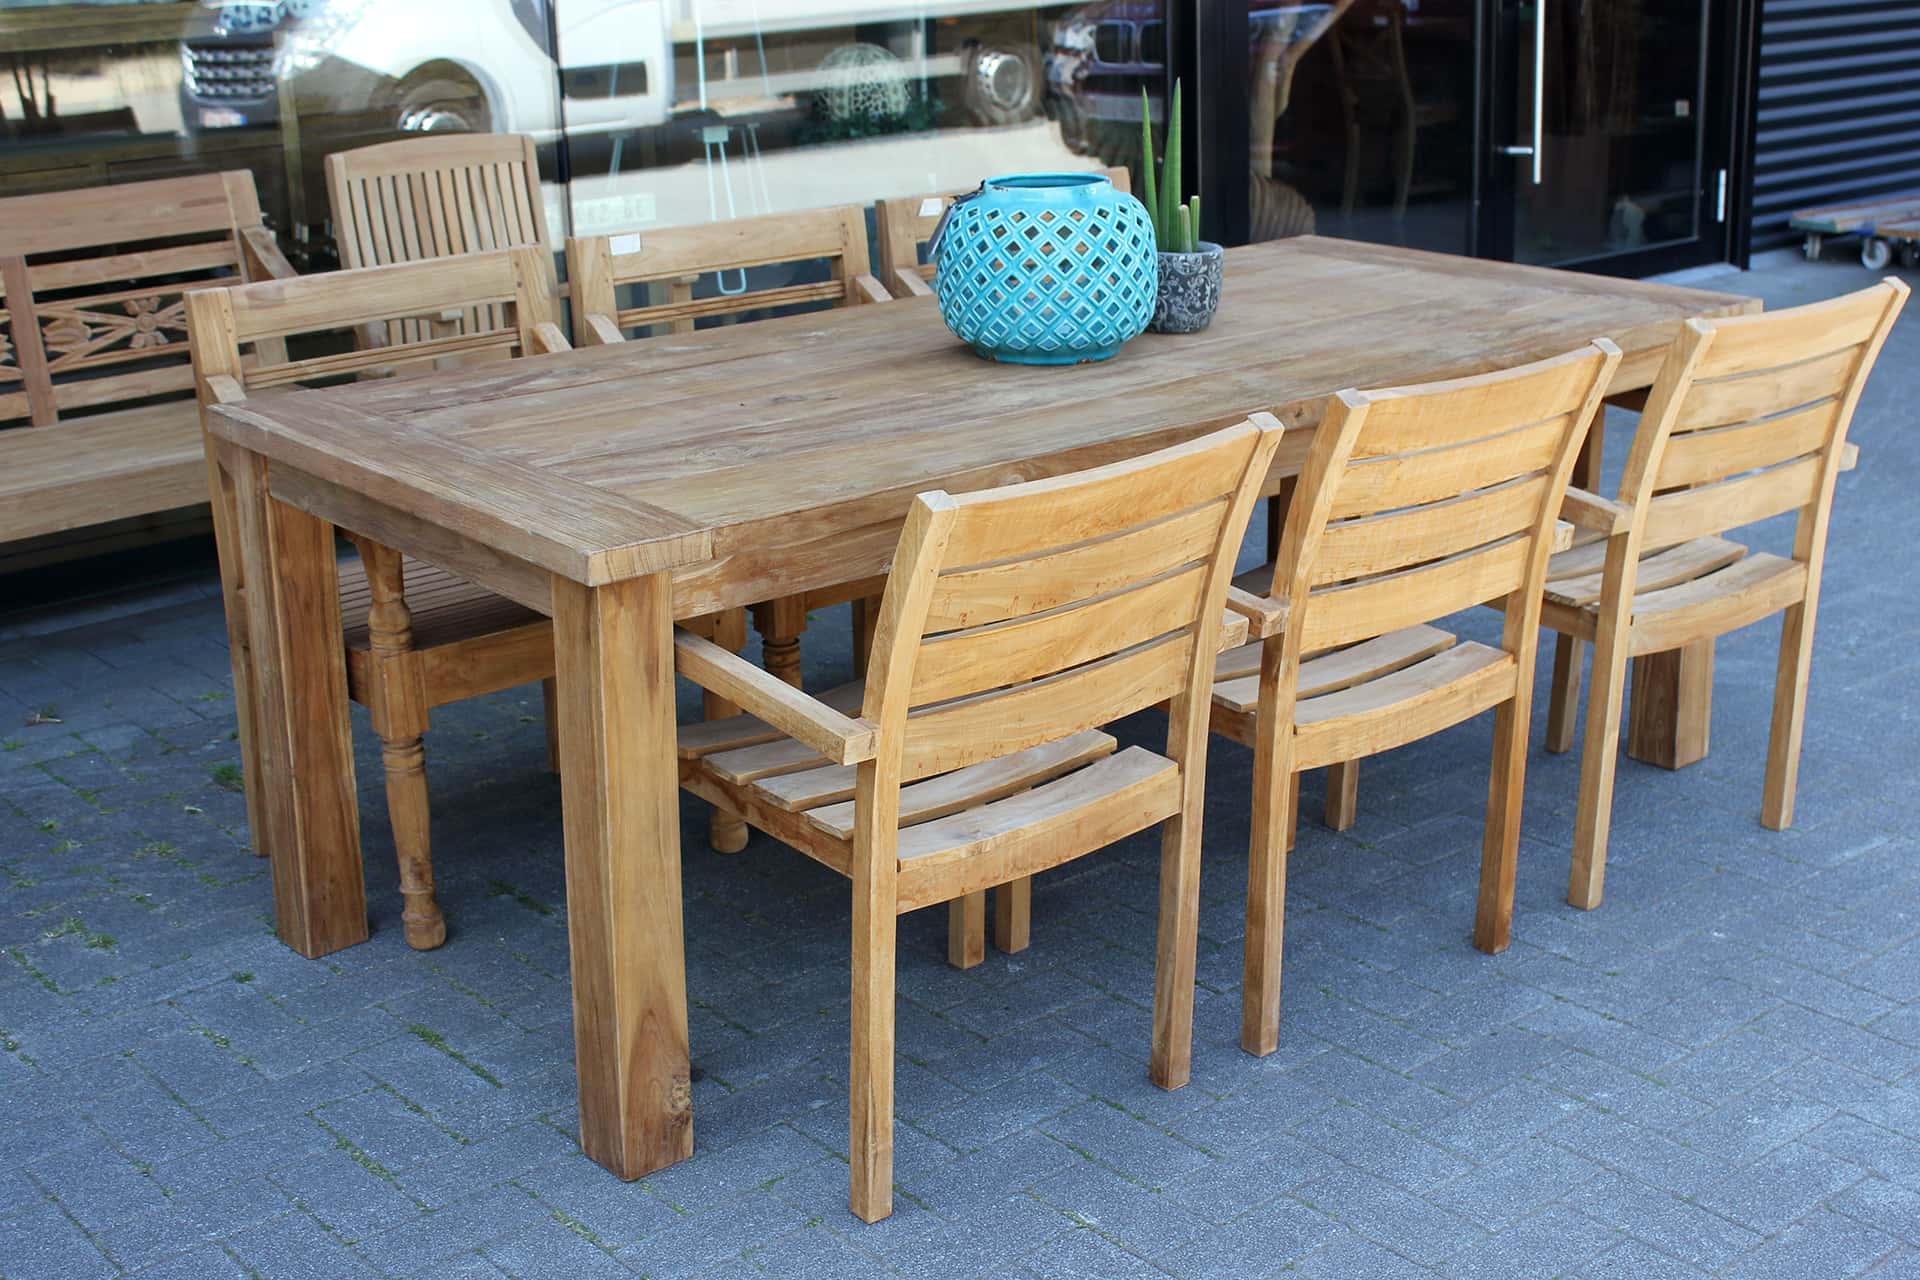 Teak Taman O220DK Old | thick teak garden table in brushed old teak, quality from Indonesia. Small & large garden tables in solid teak - TEAK2